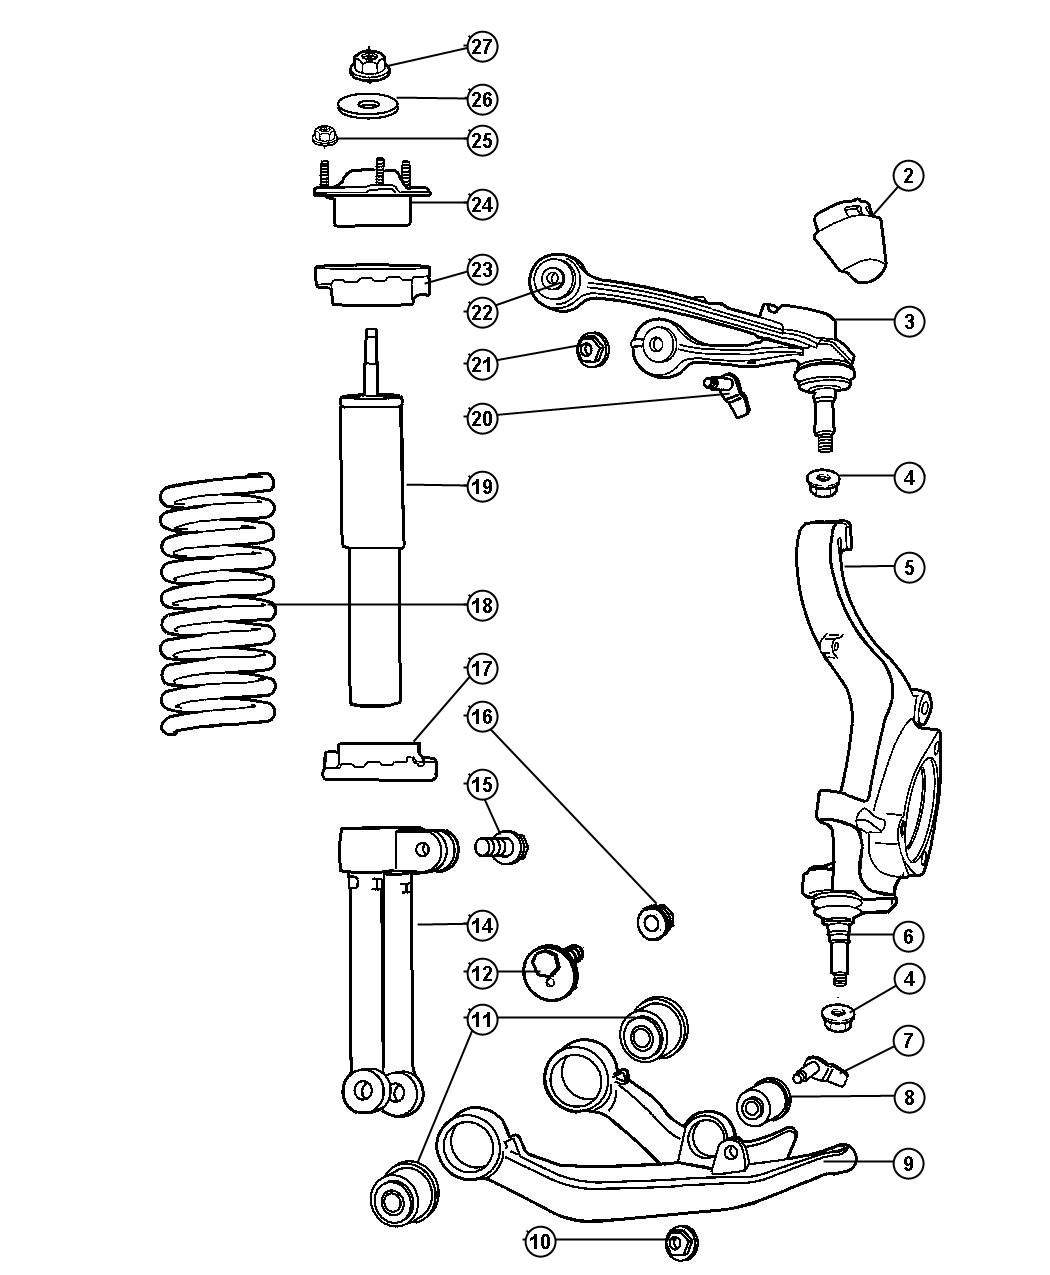 Chrysler 300 Rear End Suspension in addition 3 7 Liter Daimler Chrysler Engine besides Bentley Flying Spur Fuse Box Diagram together with 7 3 Injection Pump Fuel Shut Off Solenoid furthermore 04857673AA. on 2004 pacifica front bumper